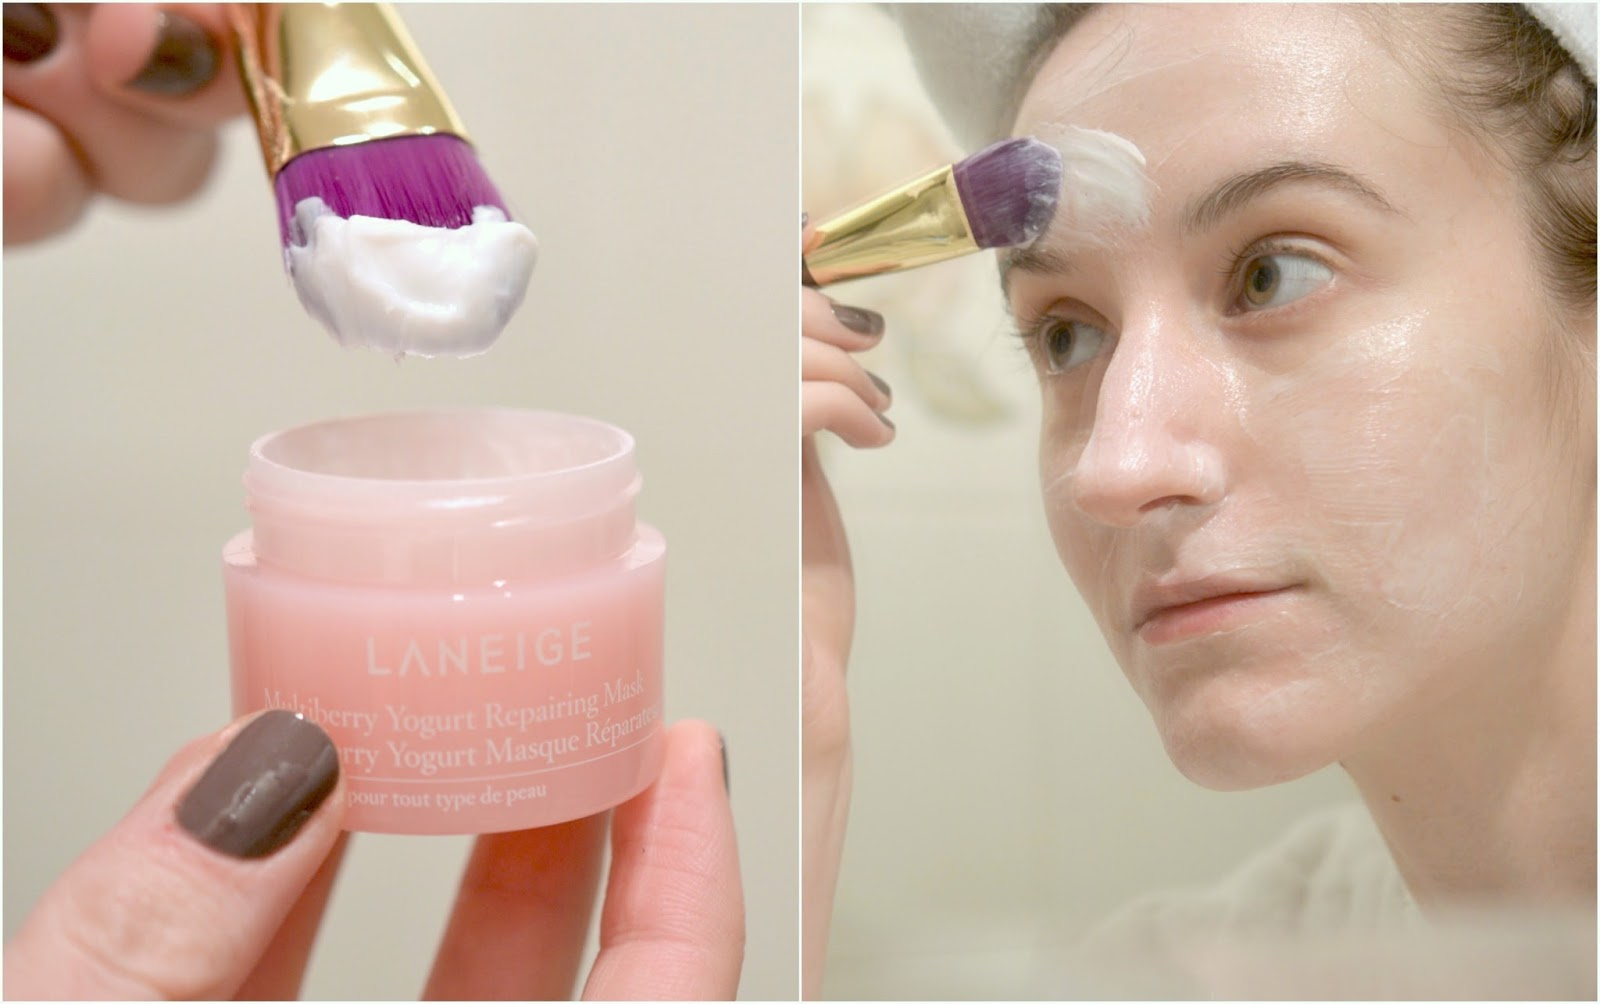 Multiberry Yogurt Repairing Mask